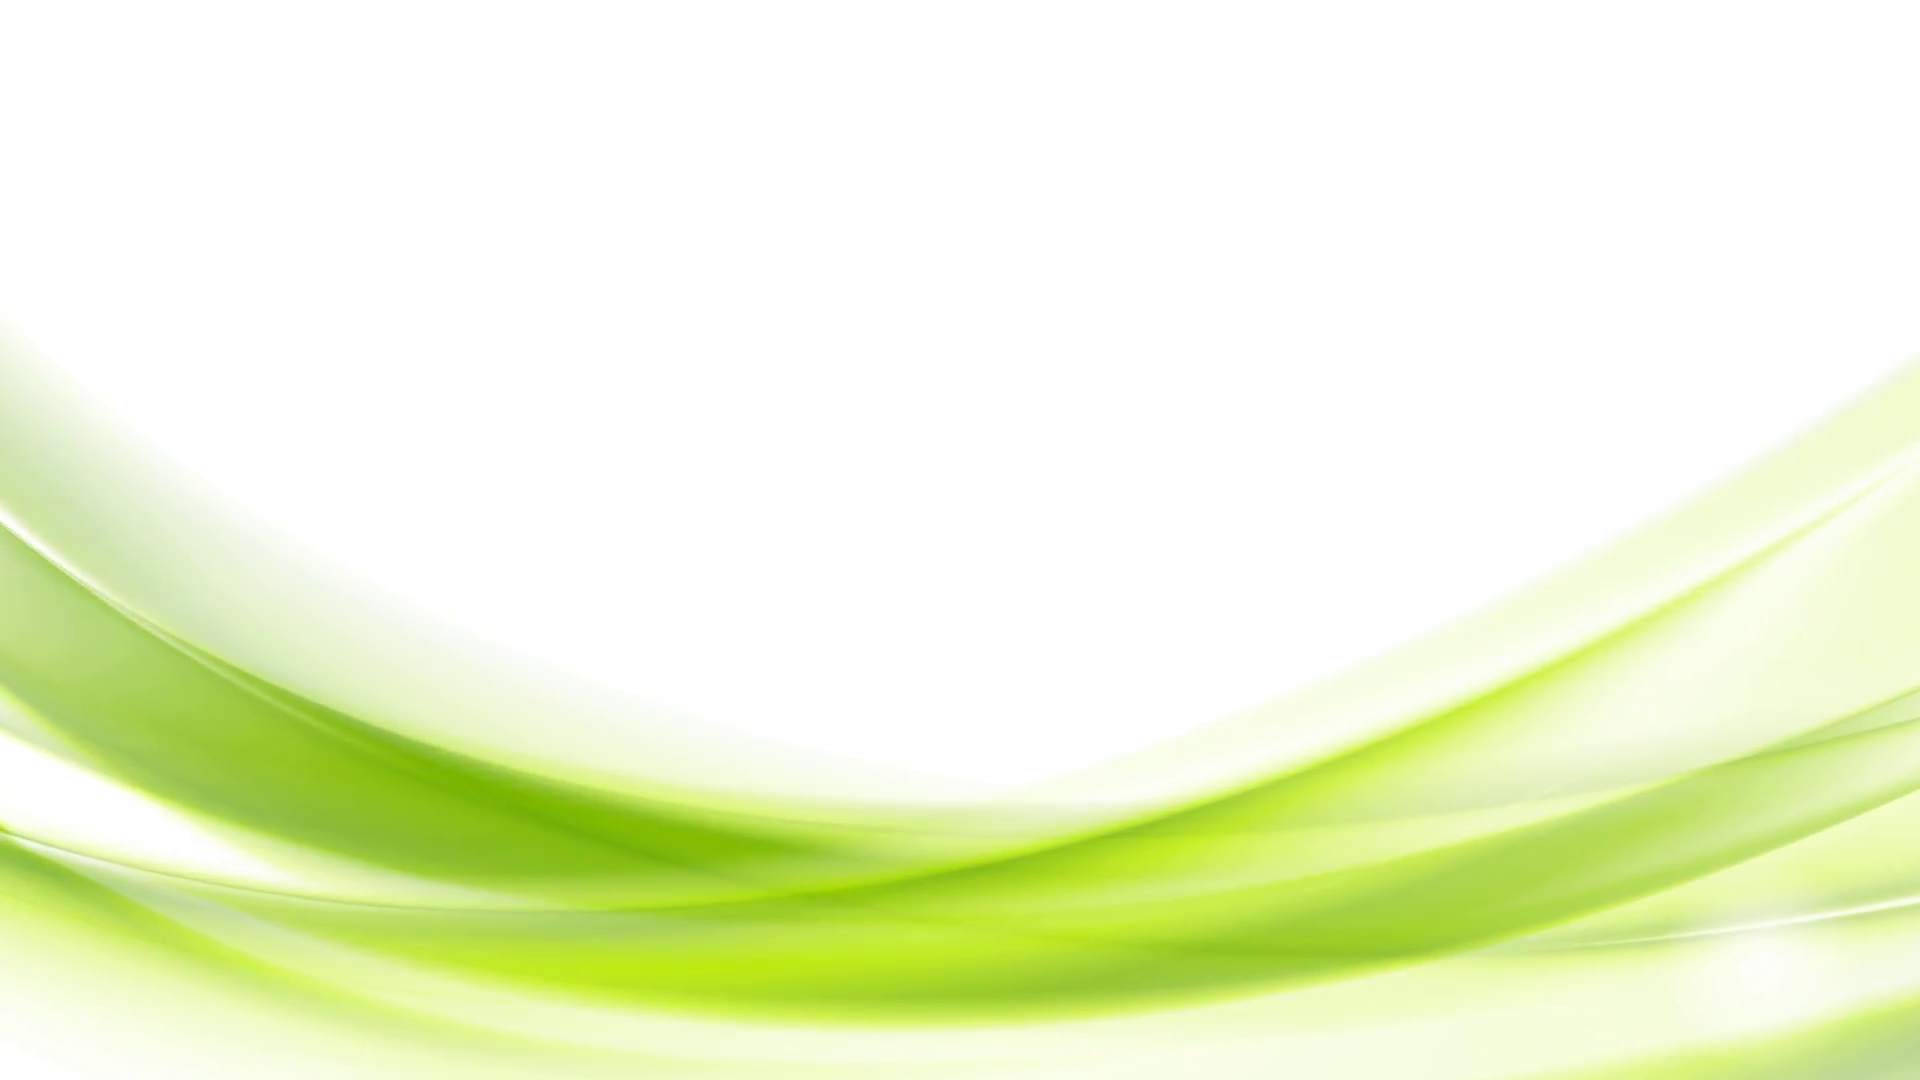 Background Hd Green Png - Backgrounds Green - Wallpaper Cave